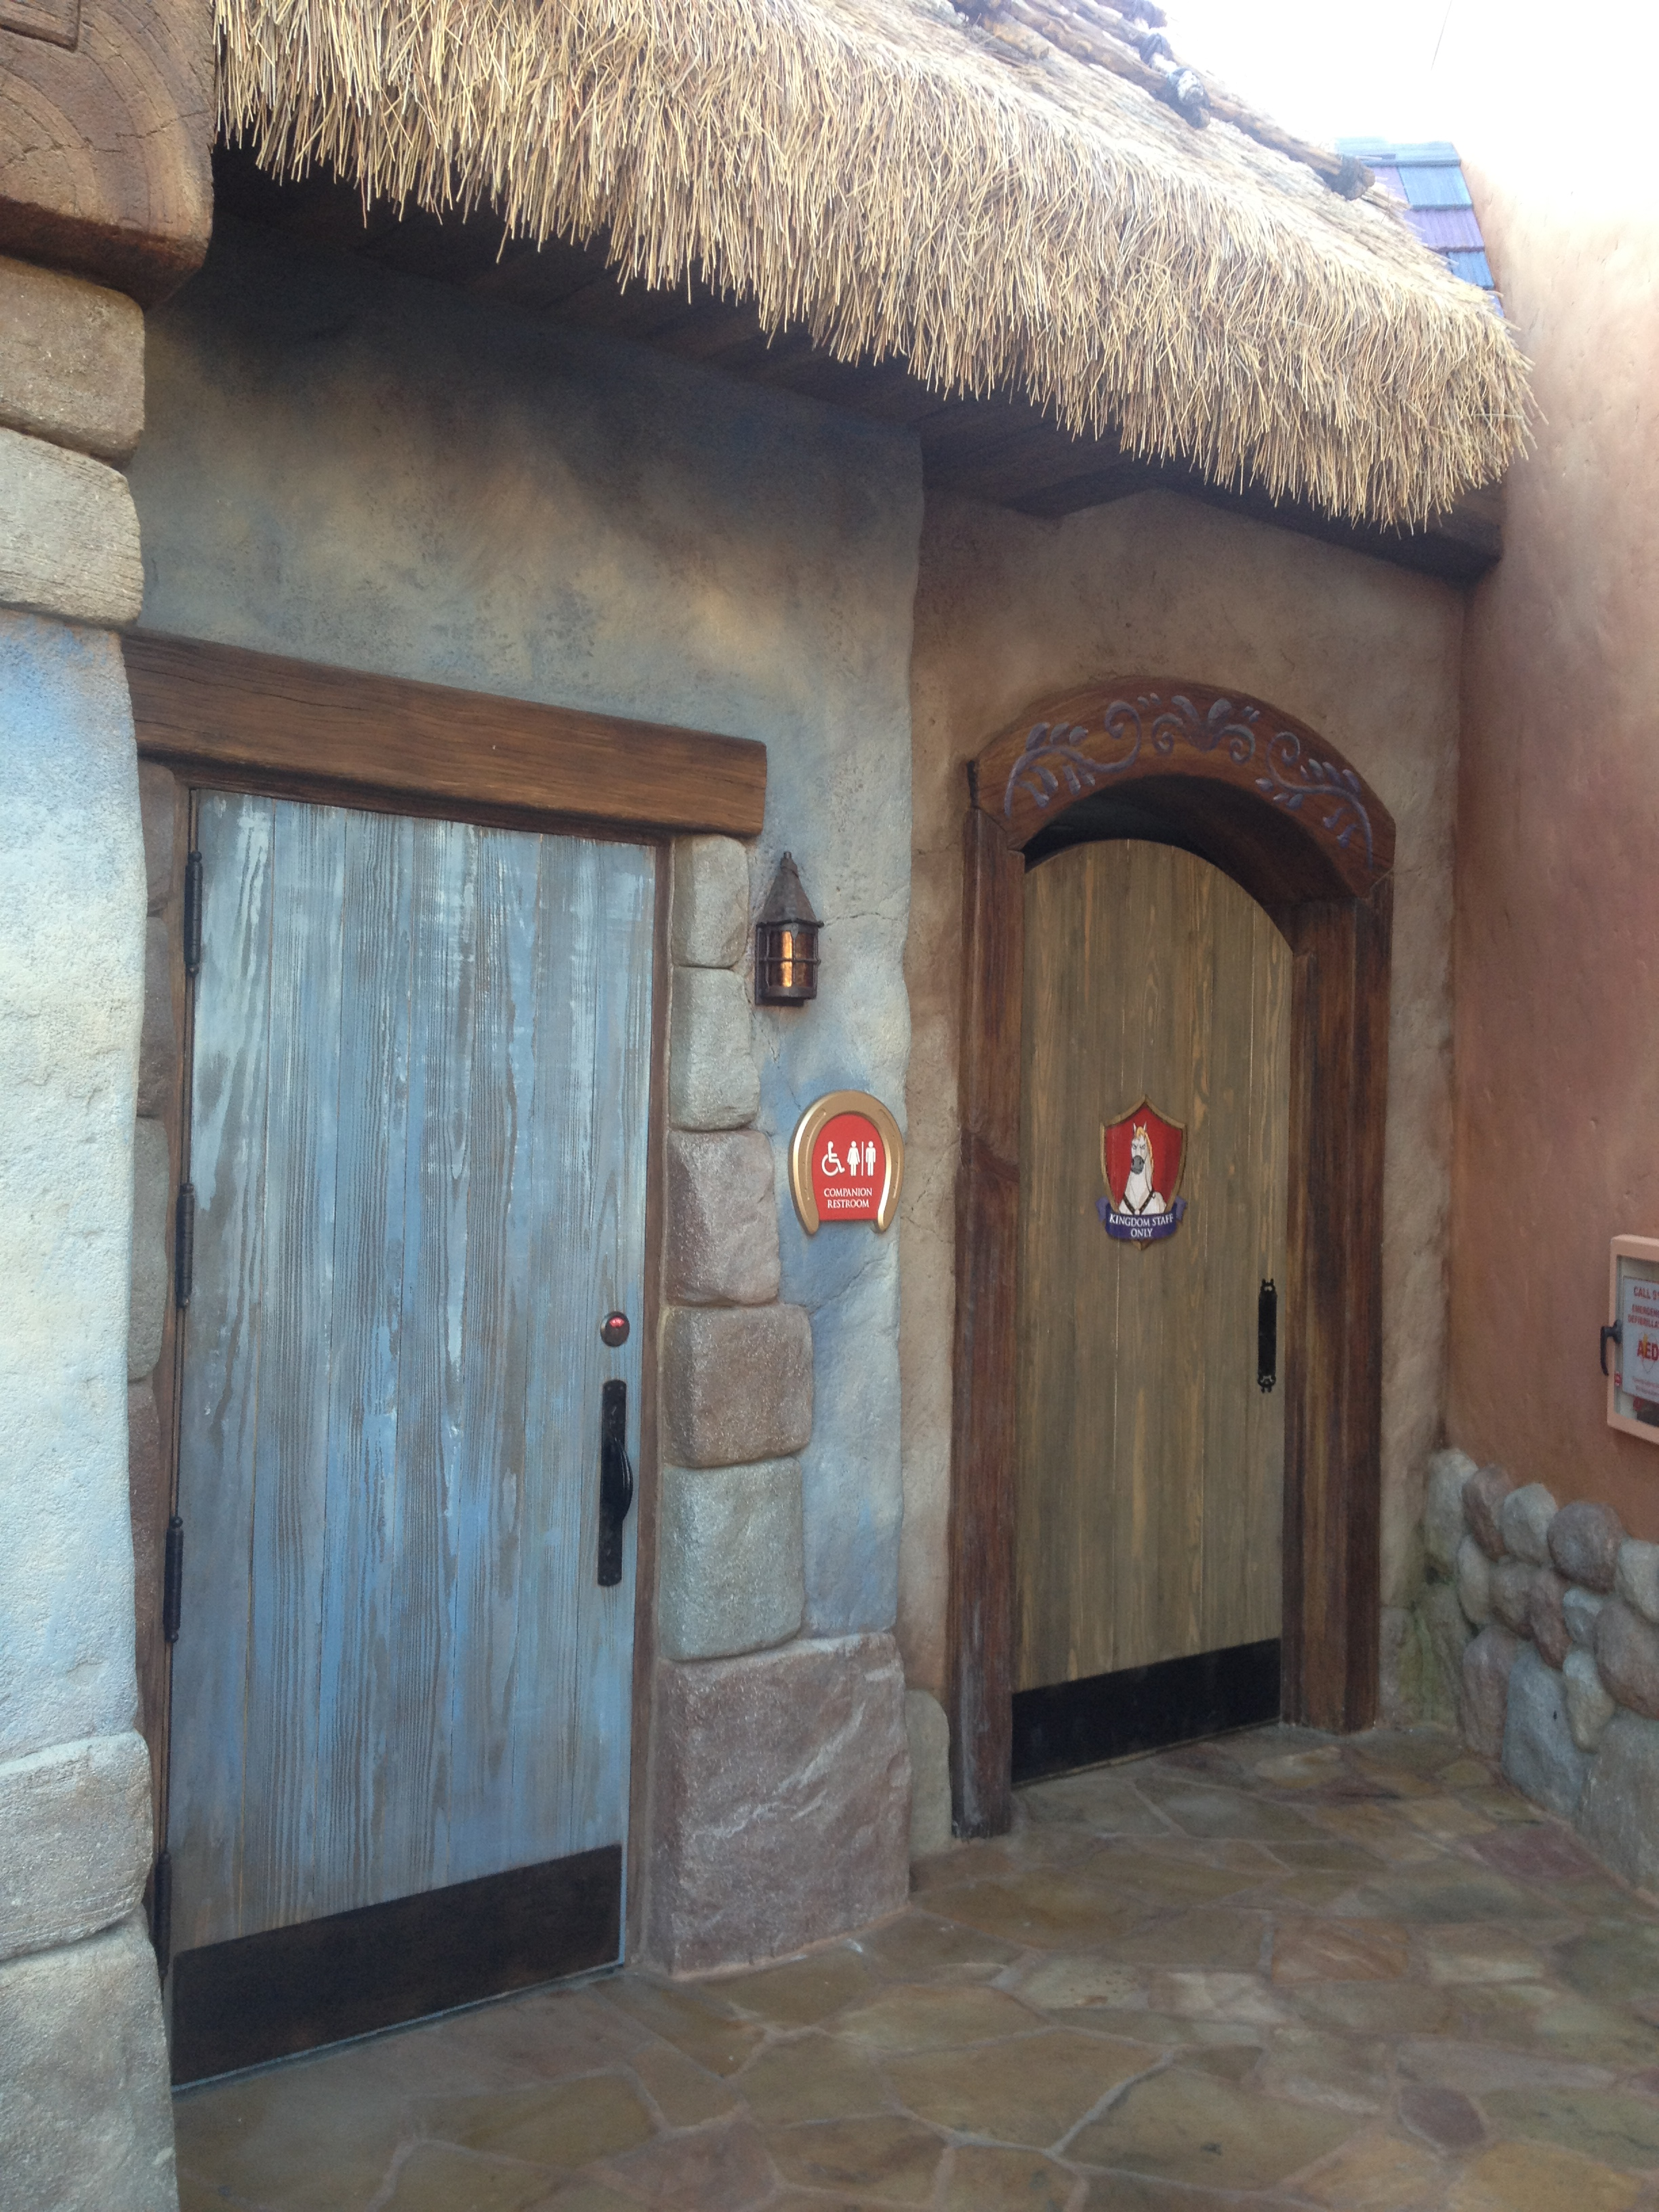 Tour of the 8 Million New Fantasyland Tangled Bathroom